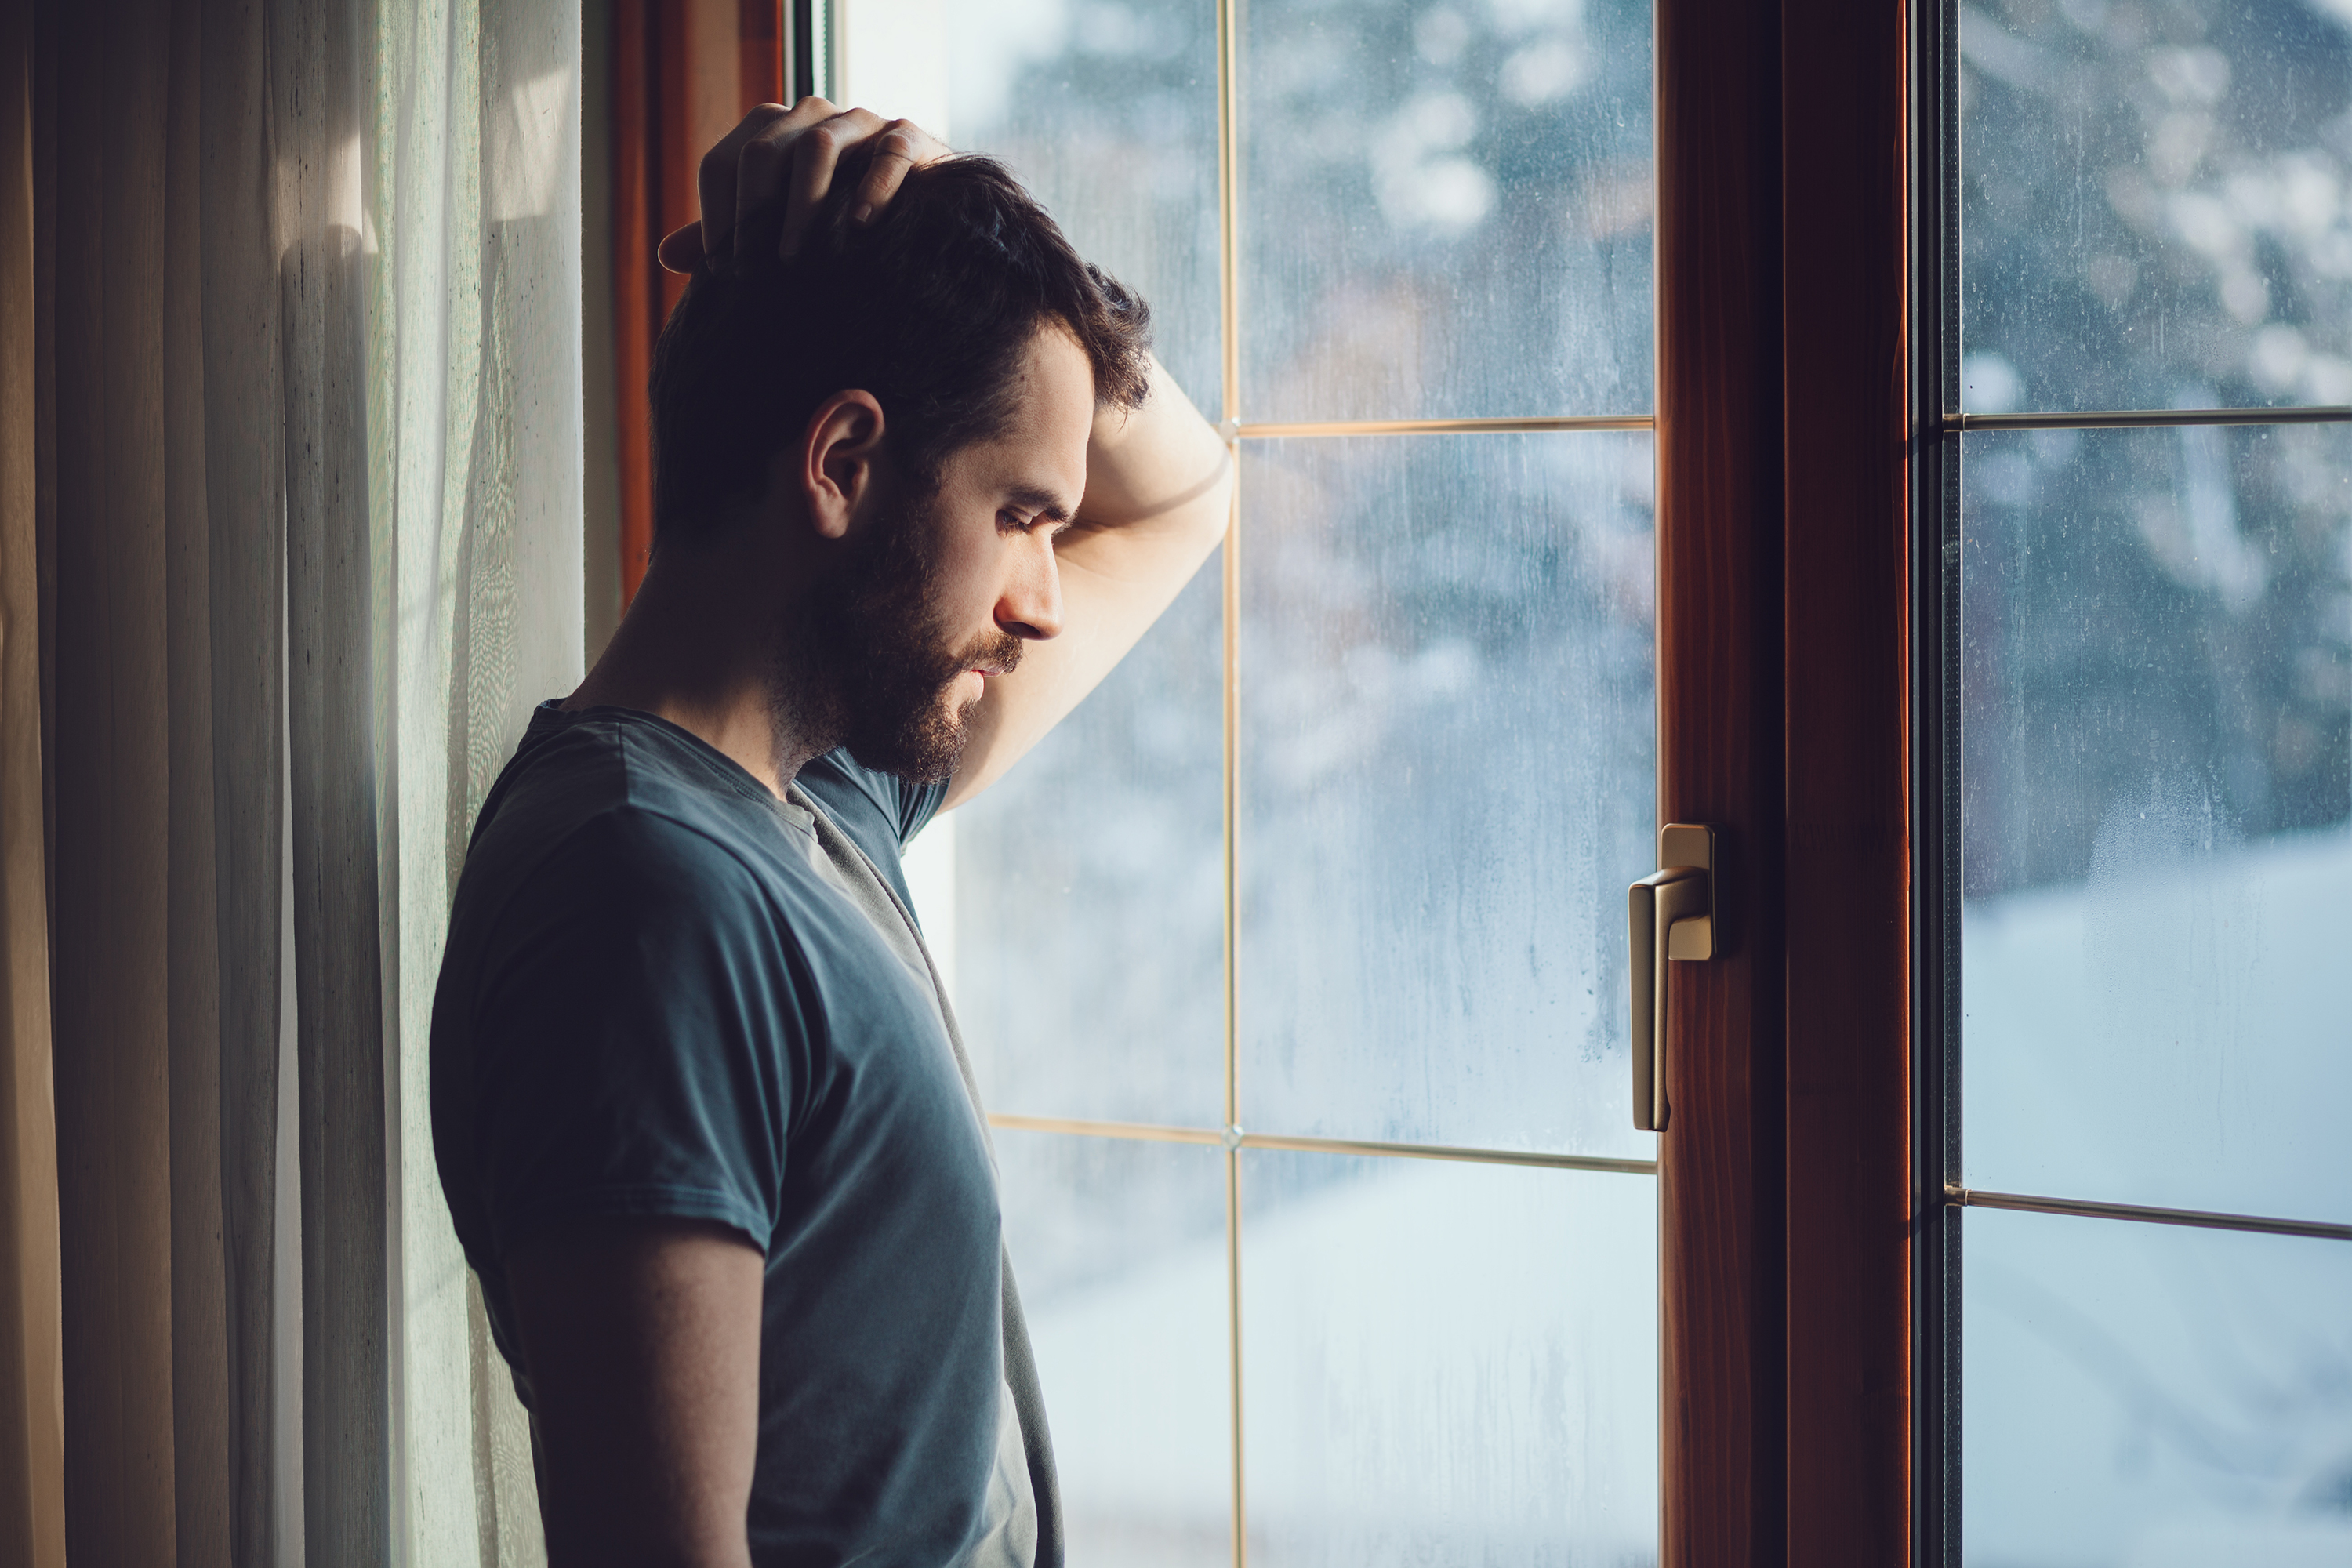 man looking sadly out of window